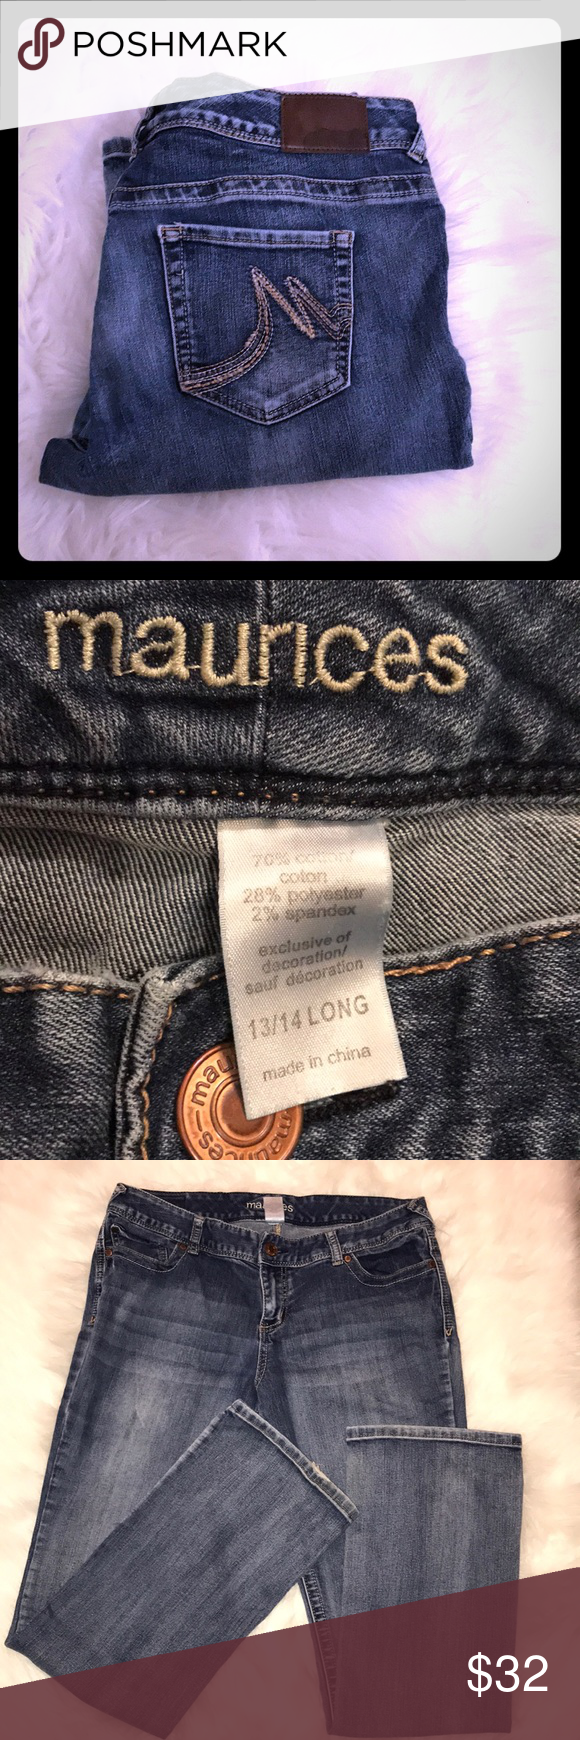 Maurice's Bootcut Jeans 👖 Size 13/14 Long Maurice's Bootcut